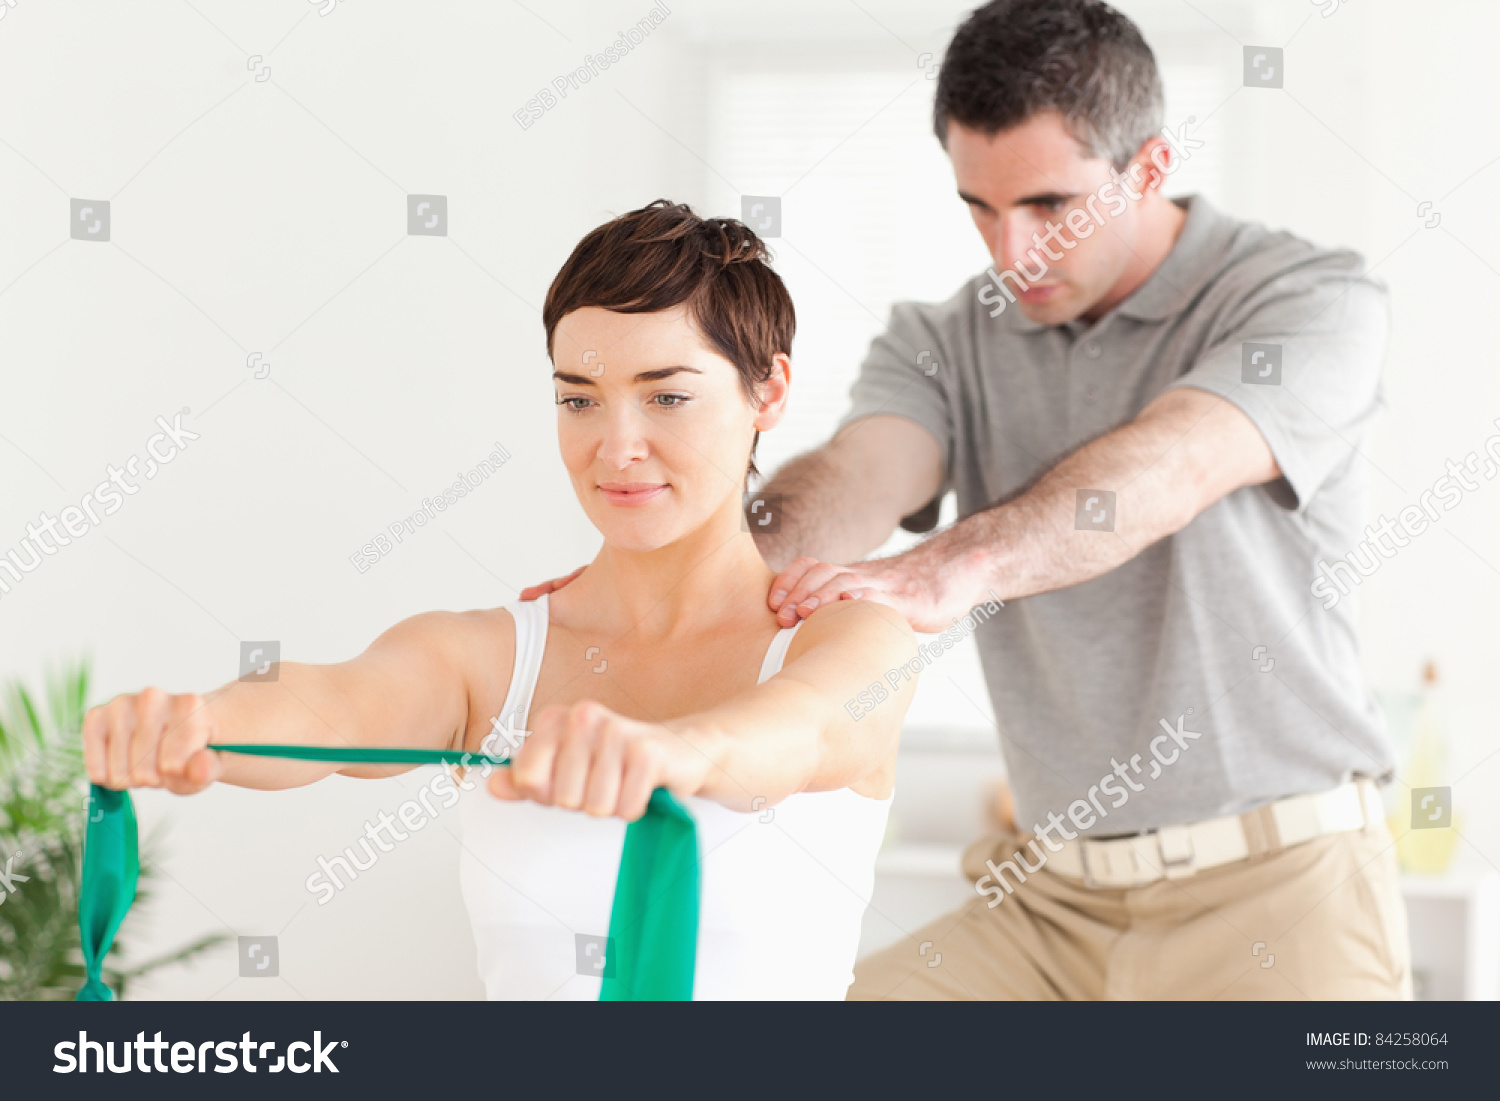 Cute Patient Doing Some Exercises Under Supervision In A Room Stock Photo 84258064 : Shutterstock